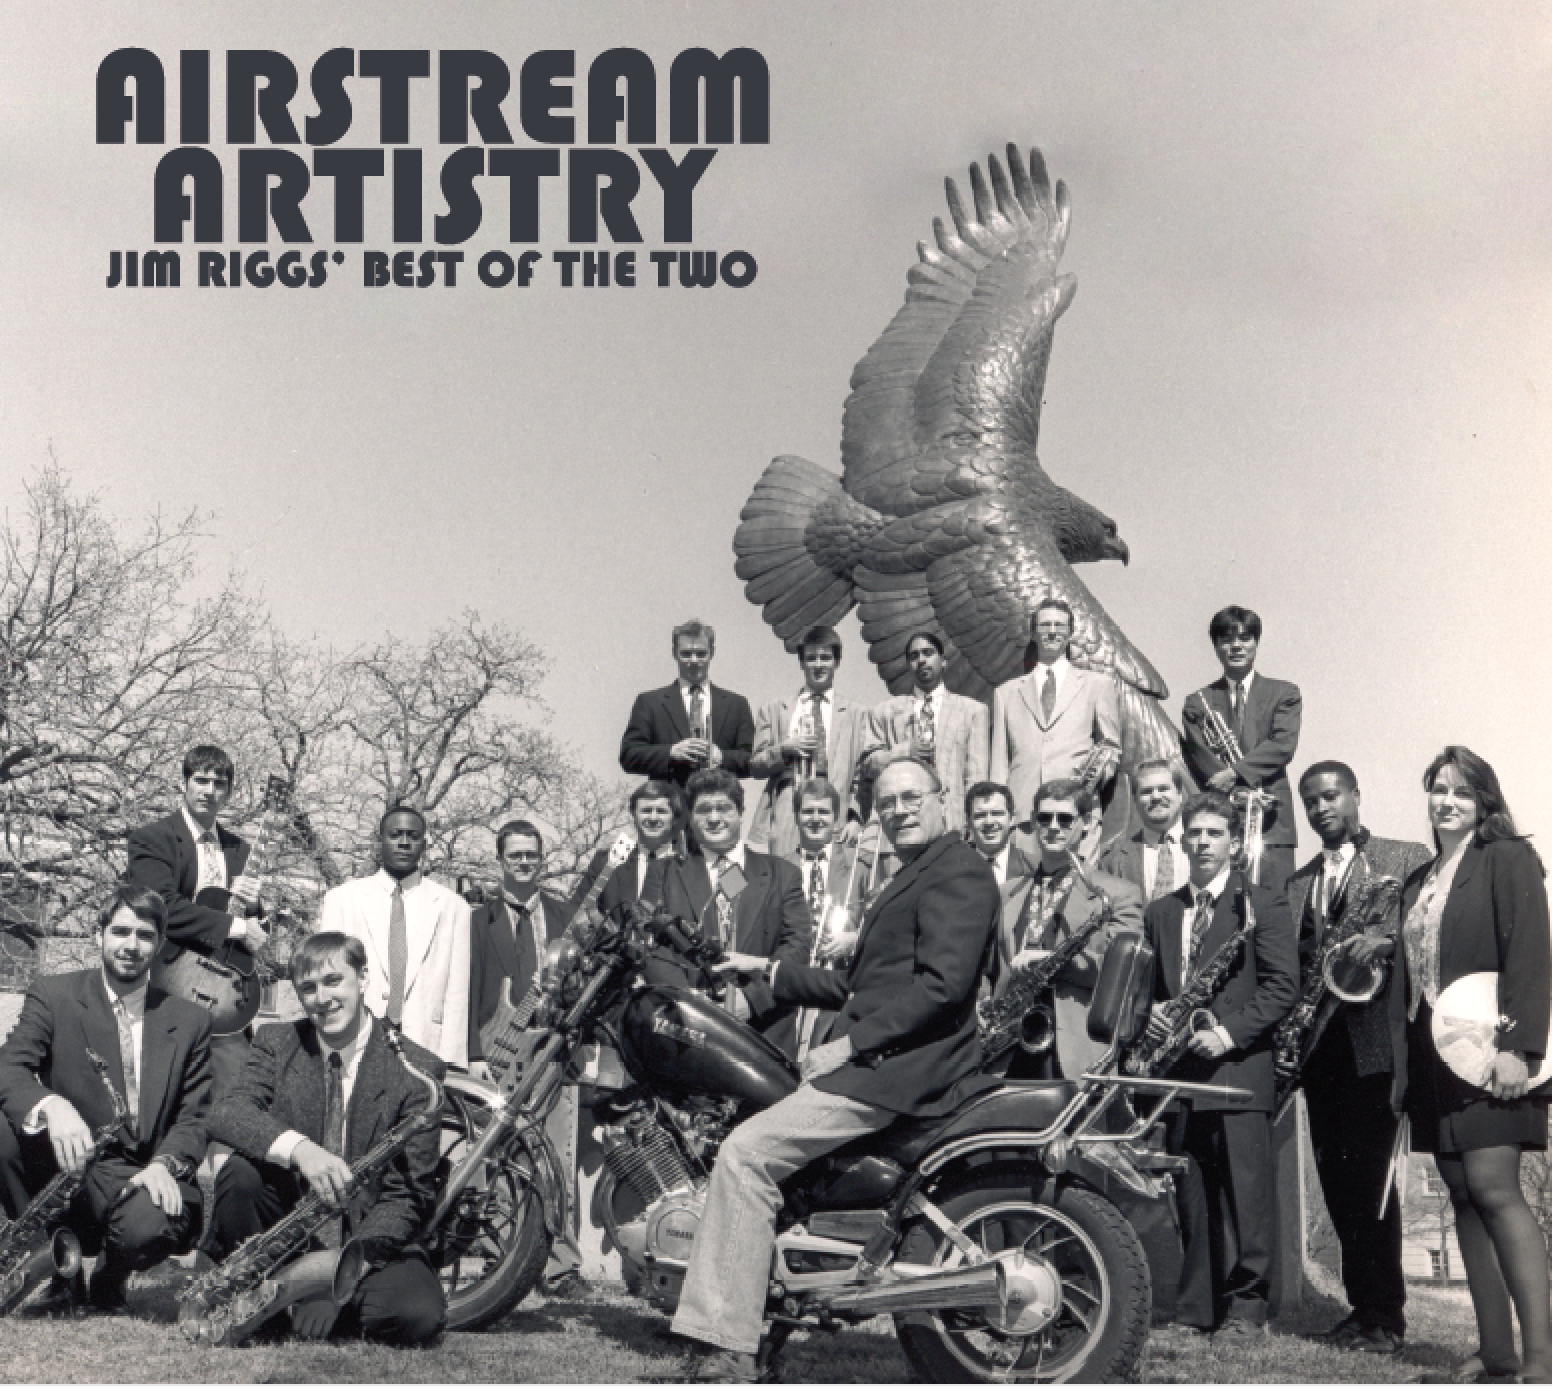 "A three-CD boxset tribute to Jim Riggs – ""Airstream Artistry: Jim Riggs' Best of the Two"" – includes 40 selections from 10 CDs recorded by the Two O'Clock Lab Band under his direction."